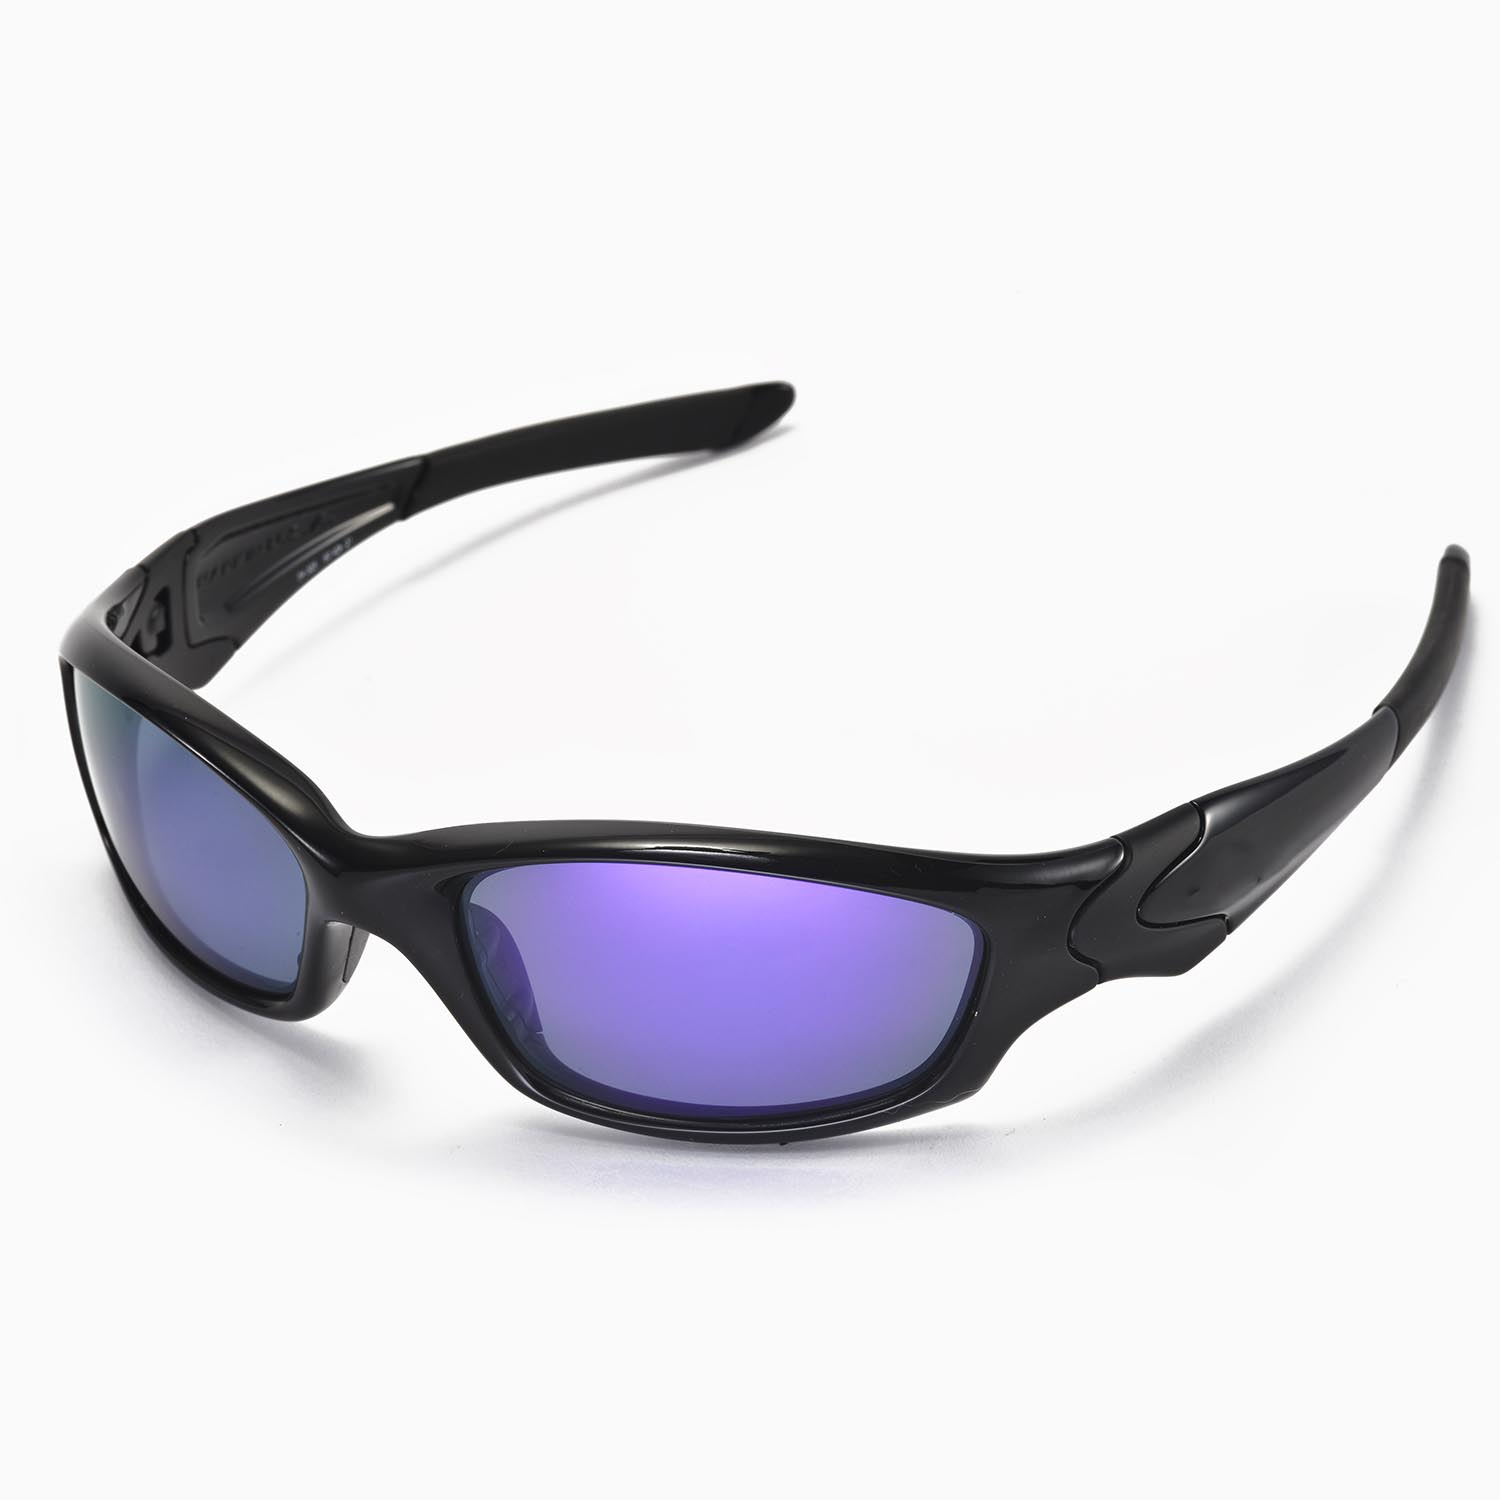 792c01a7895 Walleva Polarized Purple Lenses for Oakley Straight Jacket x1  Walleva  Microfiber Lens Cleaning Cloth x1